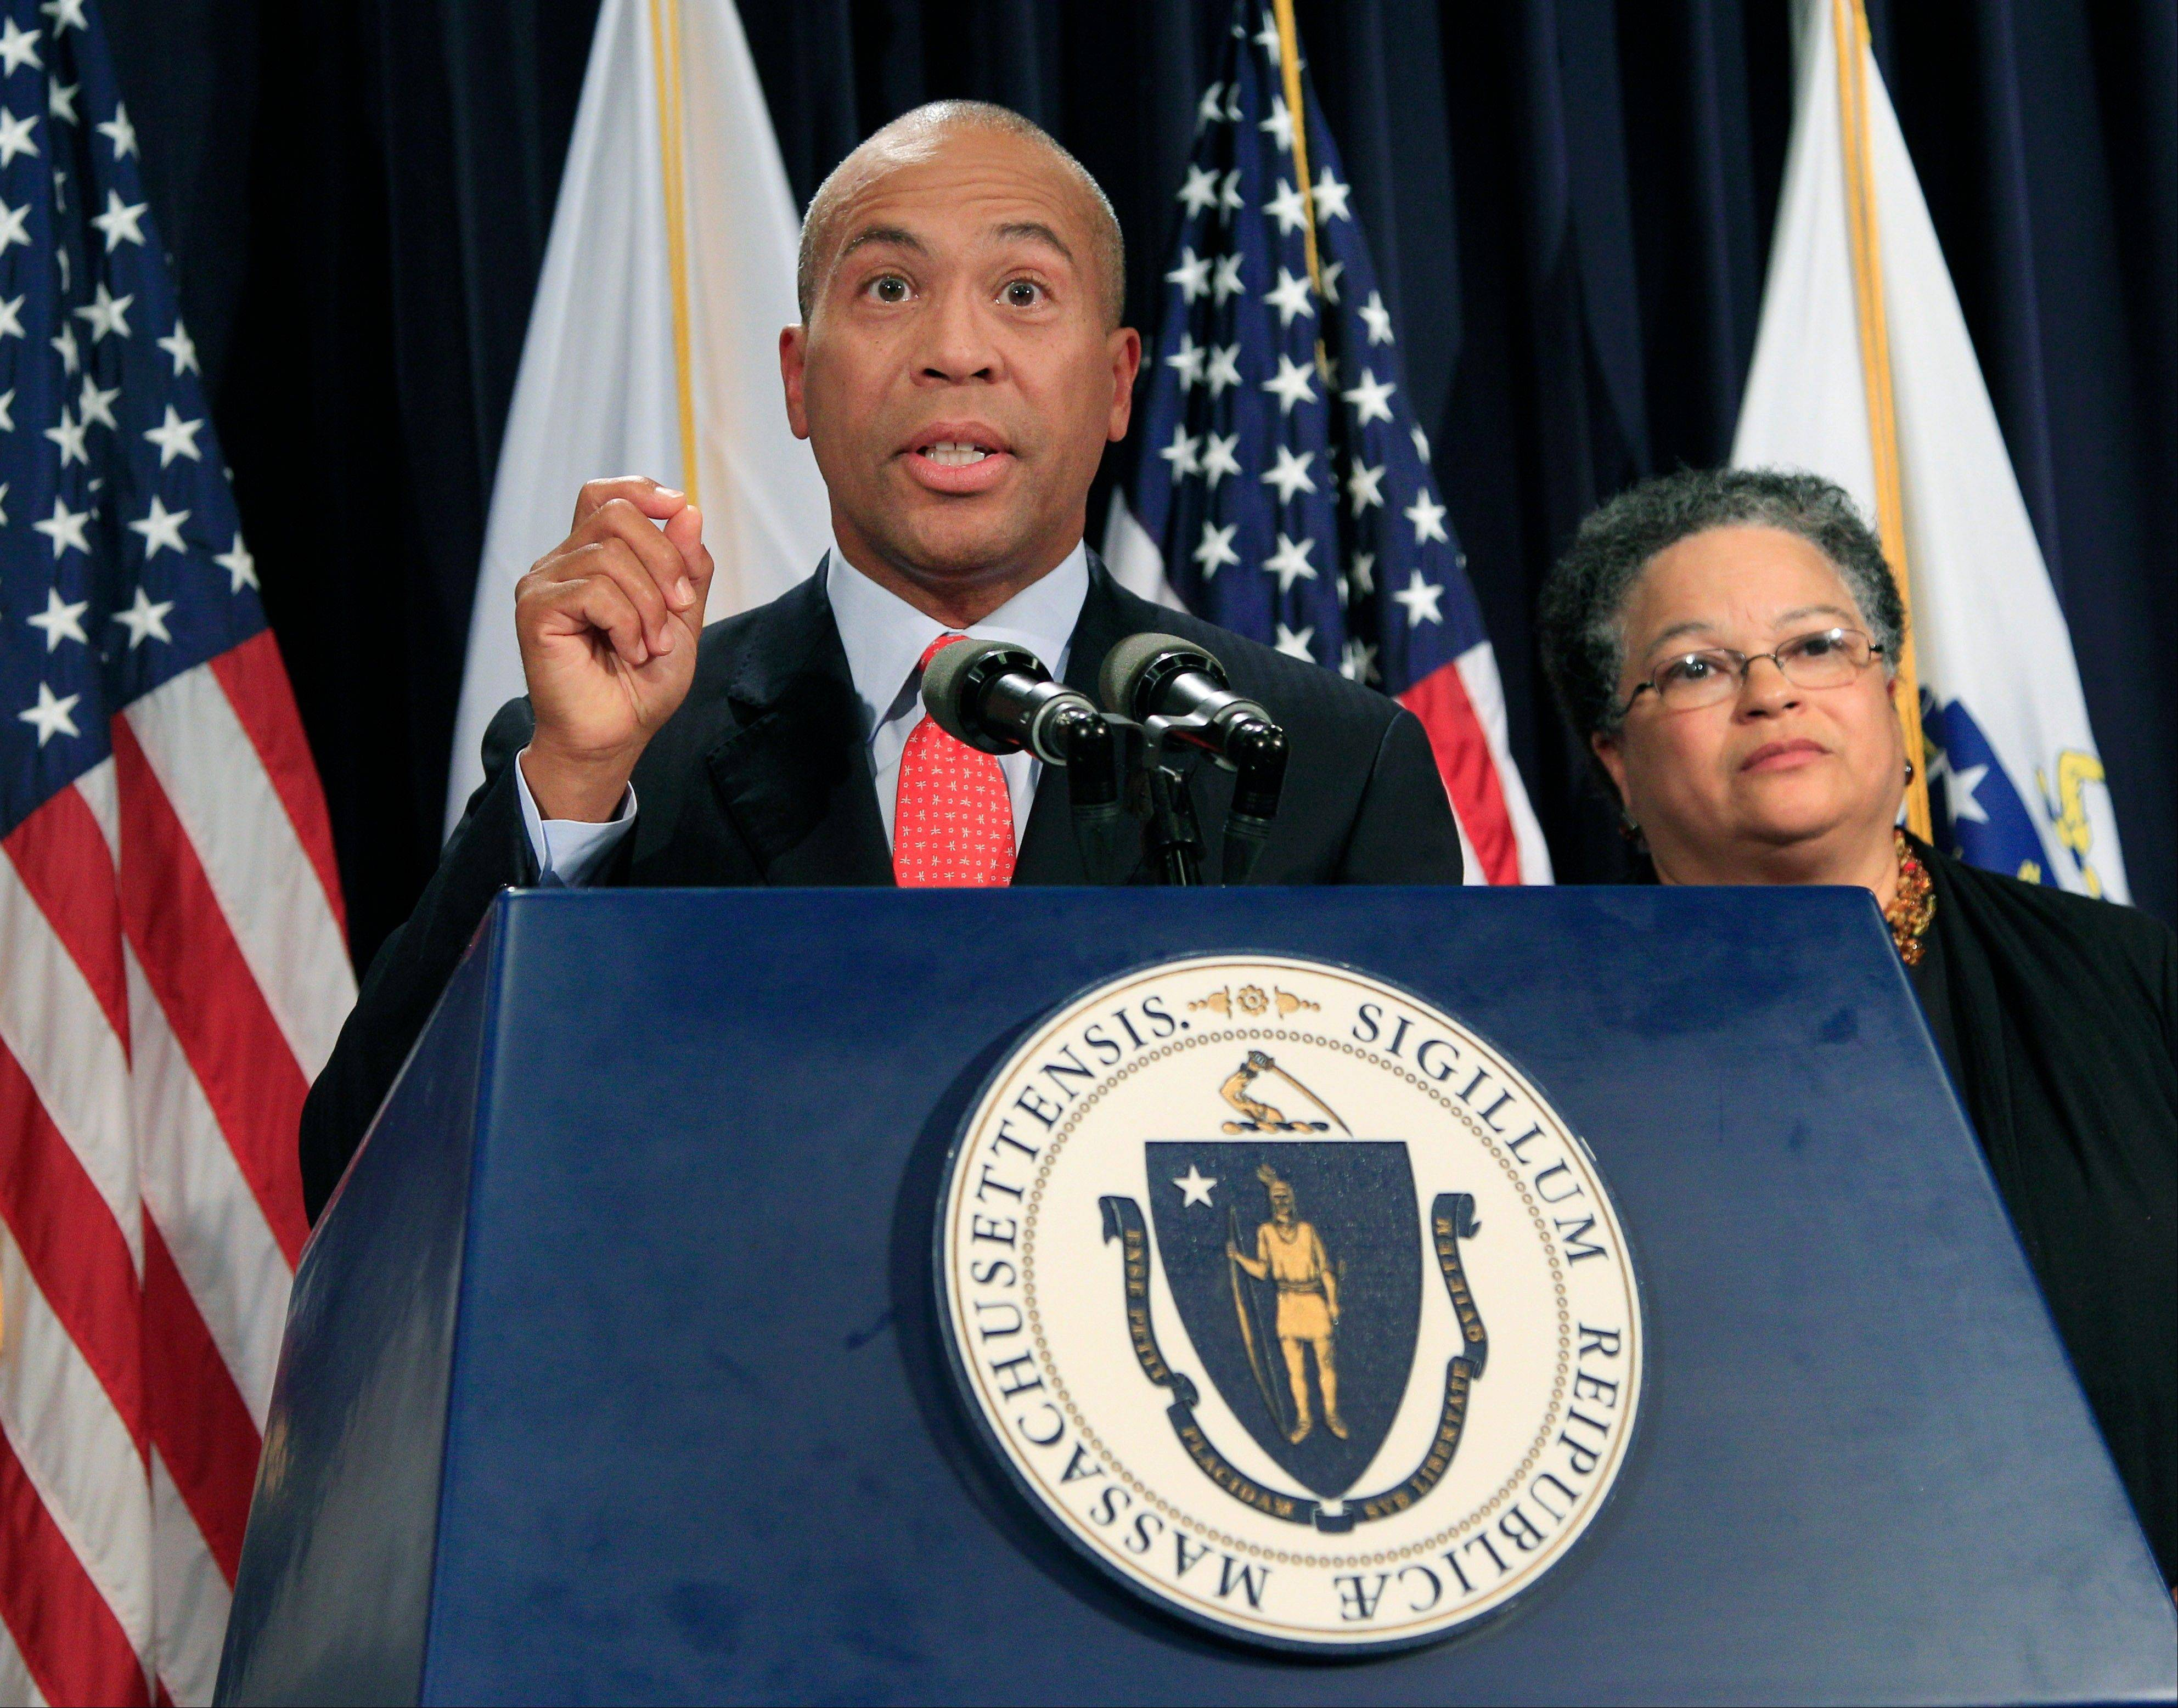 ASSOCIATED PRESSMassachusetts Gov. Deval Patrick speaks, as Health and Human Services Secretary JudyAnn Bigby listens at right, during a news conference at the Statehouse in Boston, where he spoke about the U.S. Supreme Court's decision to uphold President Barack Obama's health care overhaul.